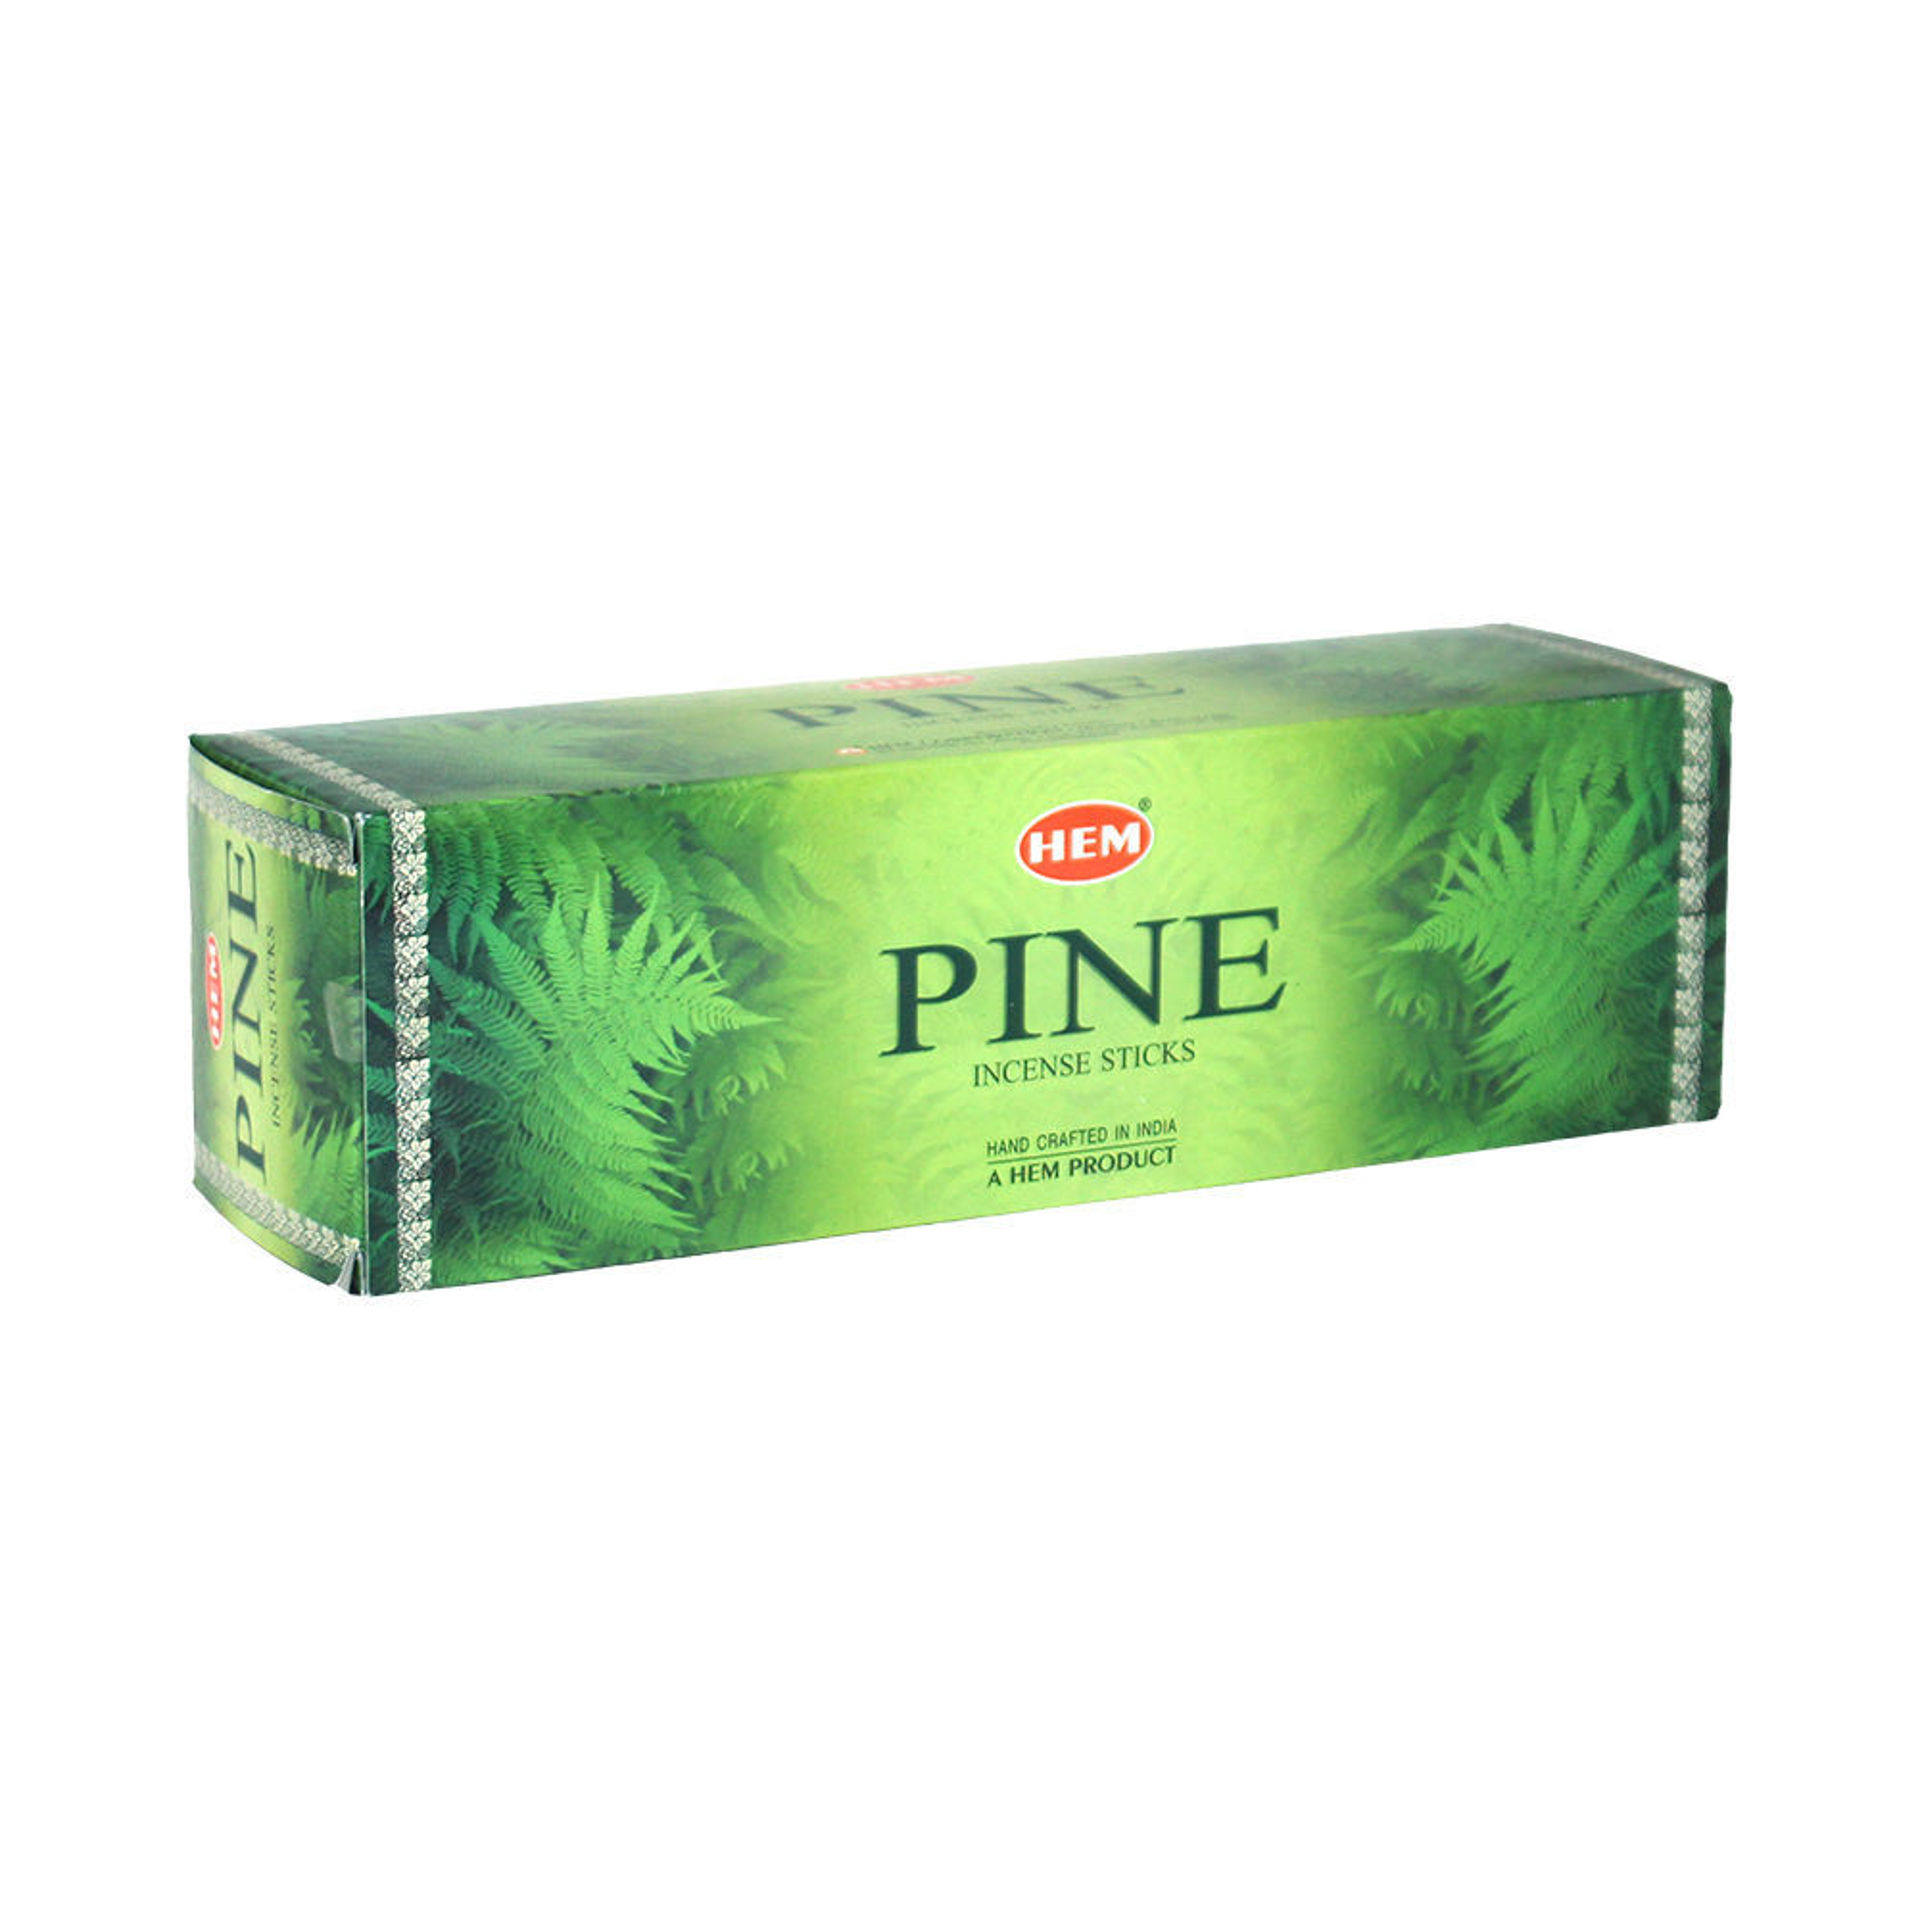 Picture of Pine Incense: 25 Pack = 200 Sticks